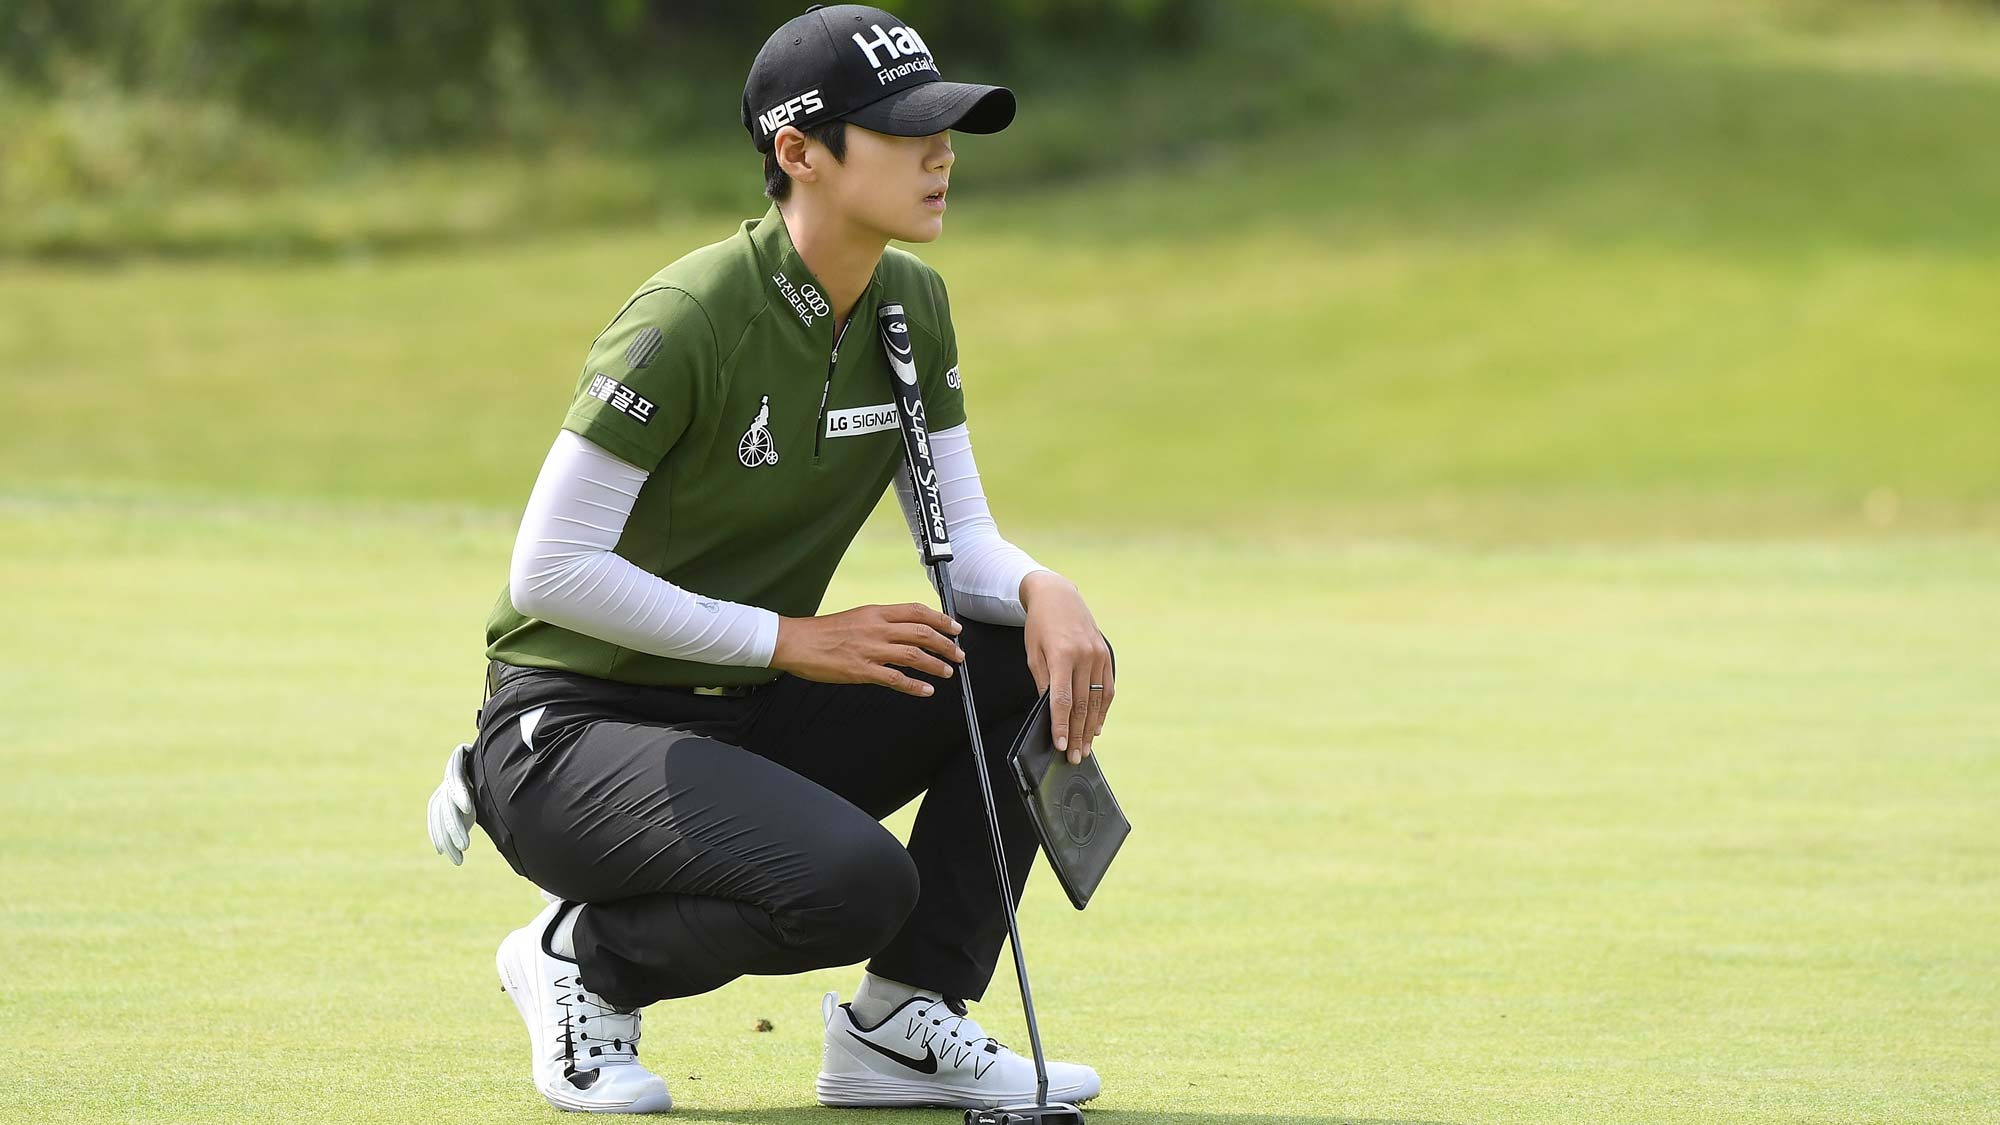 Sung Hyun Park of Korea plays a shot during the first round of the Buick LPGA Shanghai